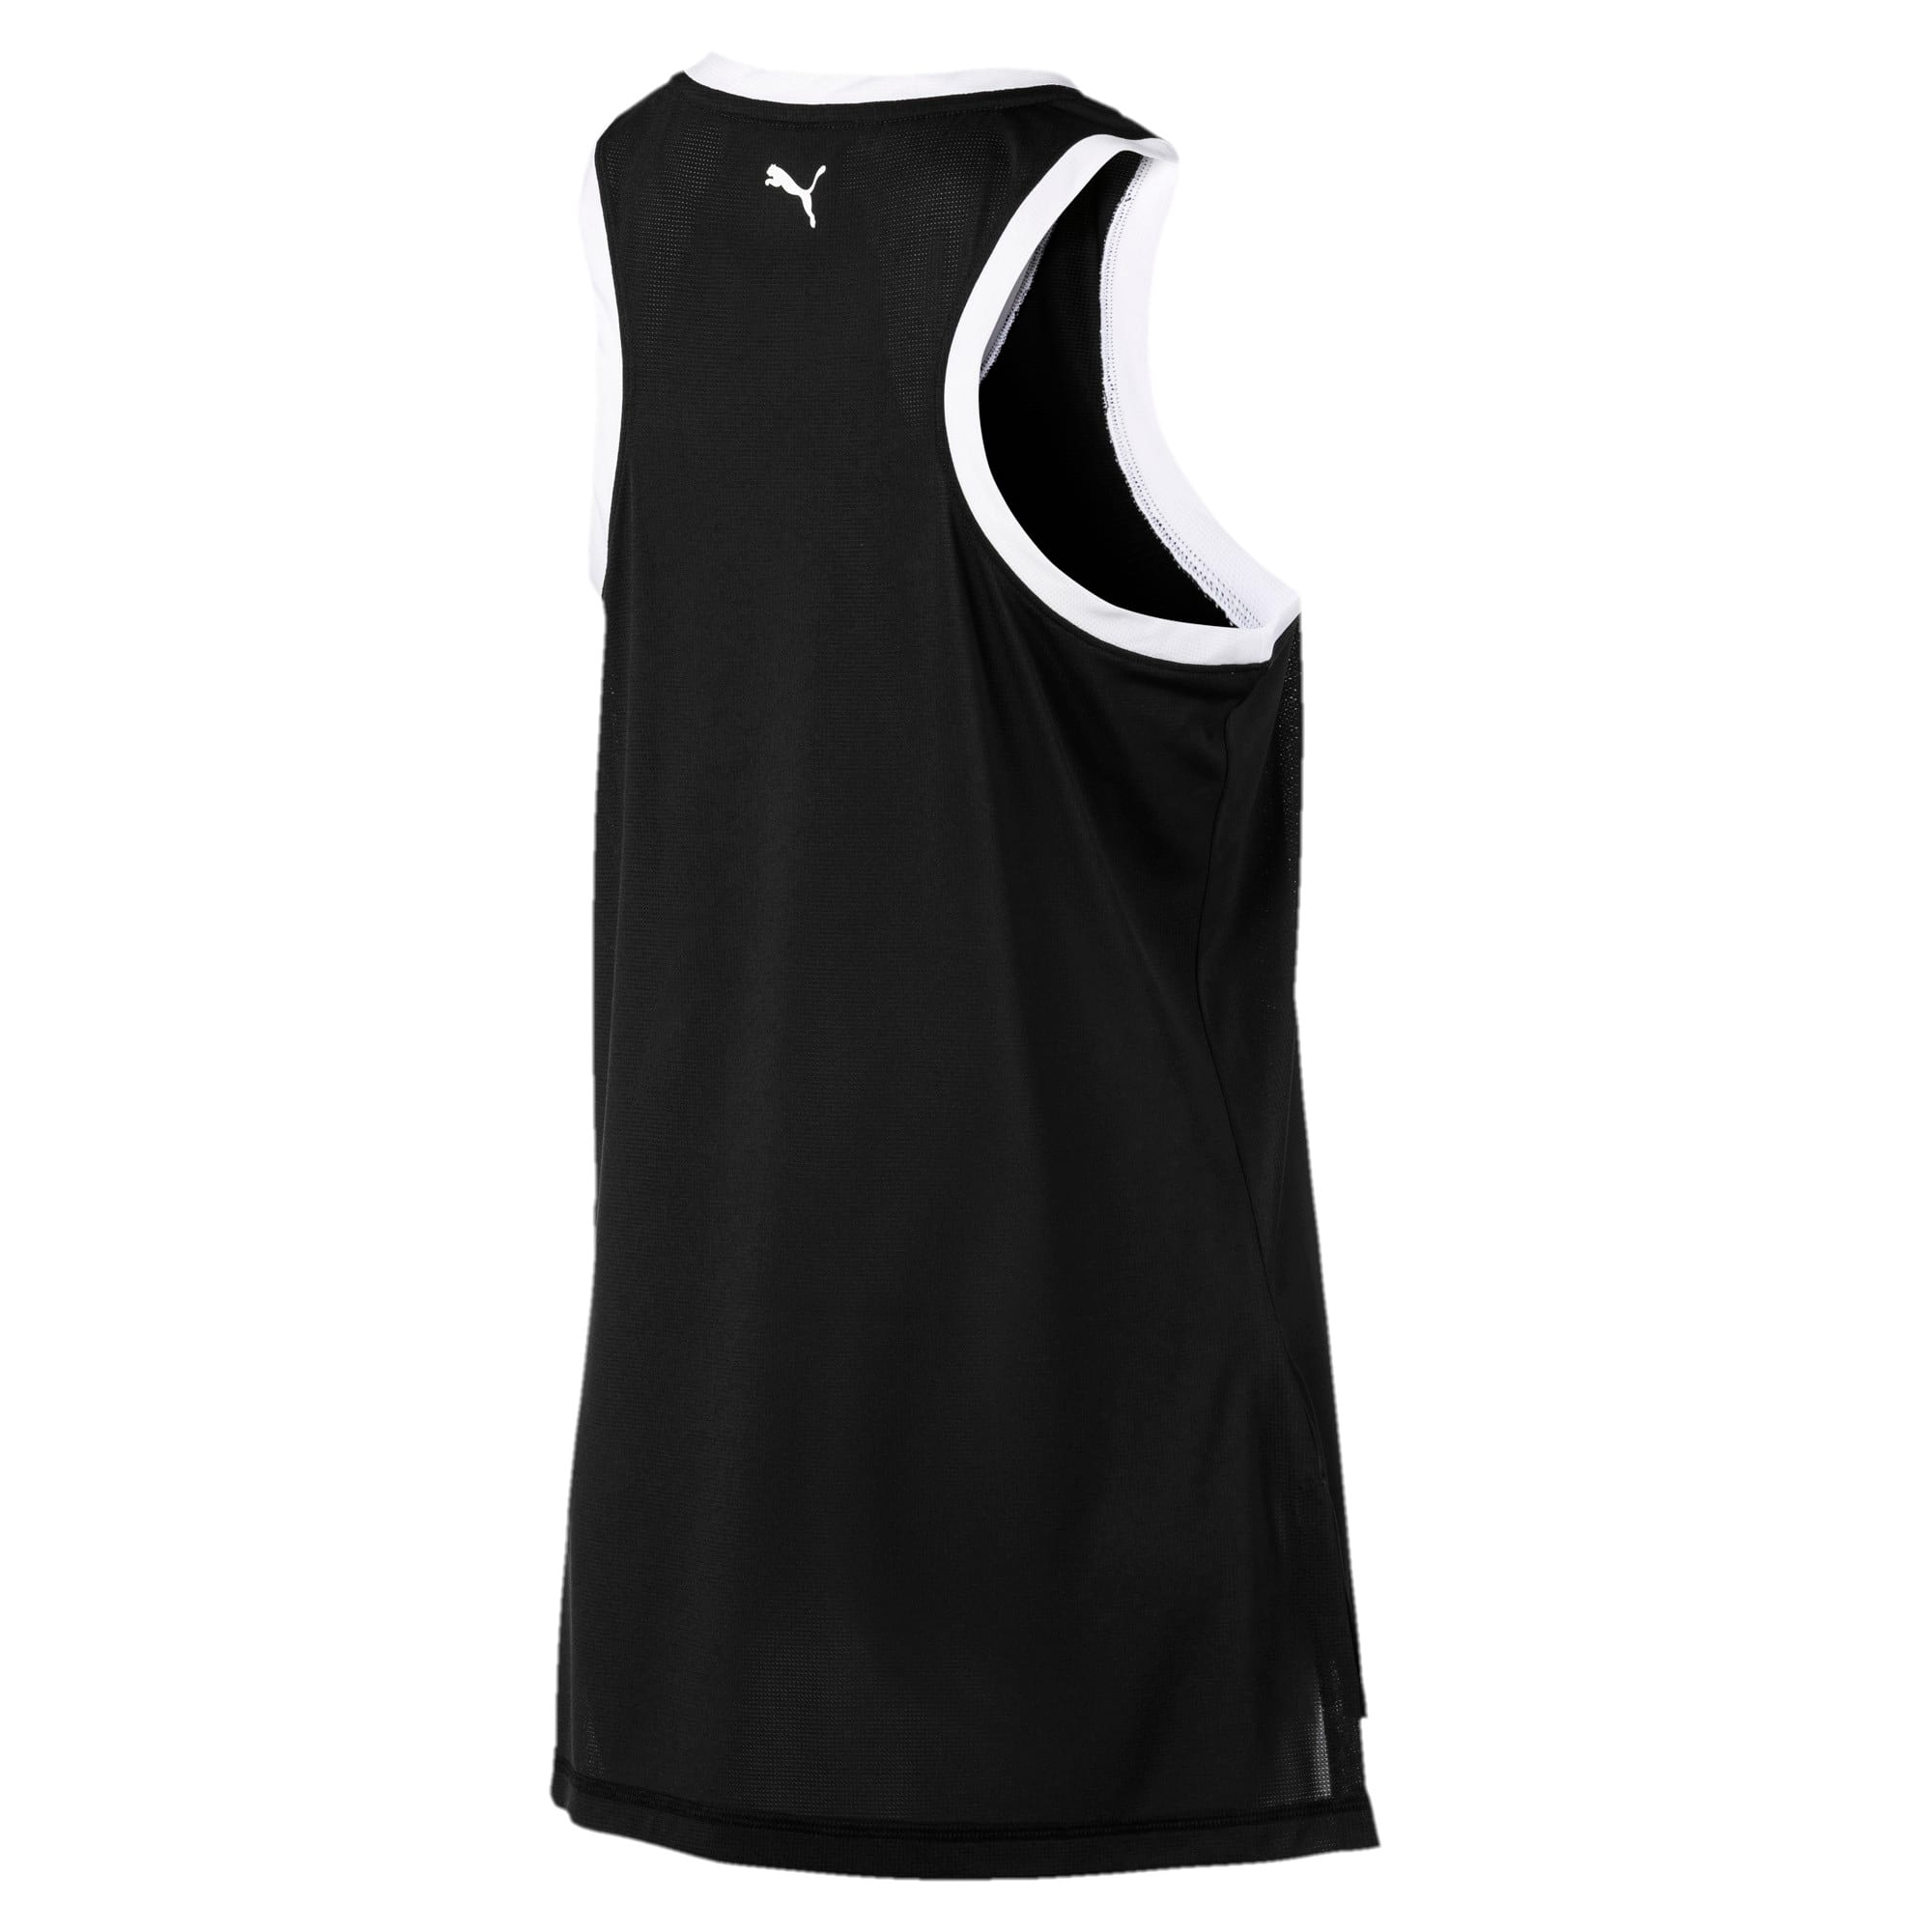 Thumbnail 5 of Logo Women's Training Tank Top, Puma Black-Puma White, medium